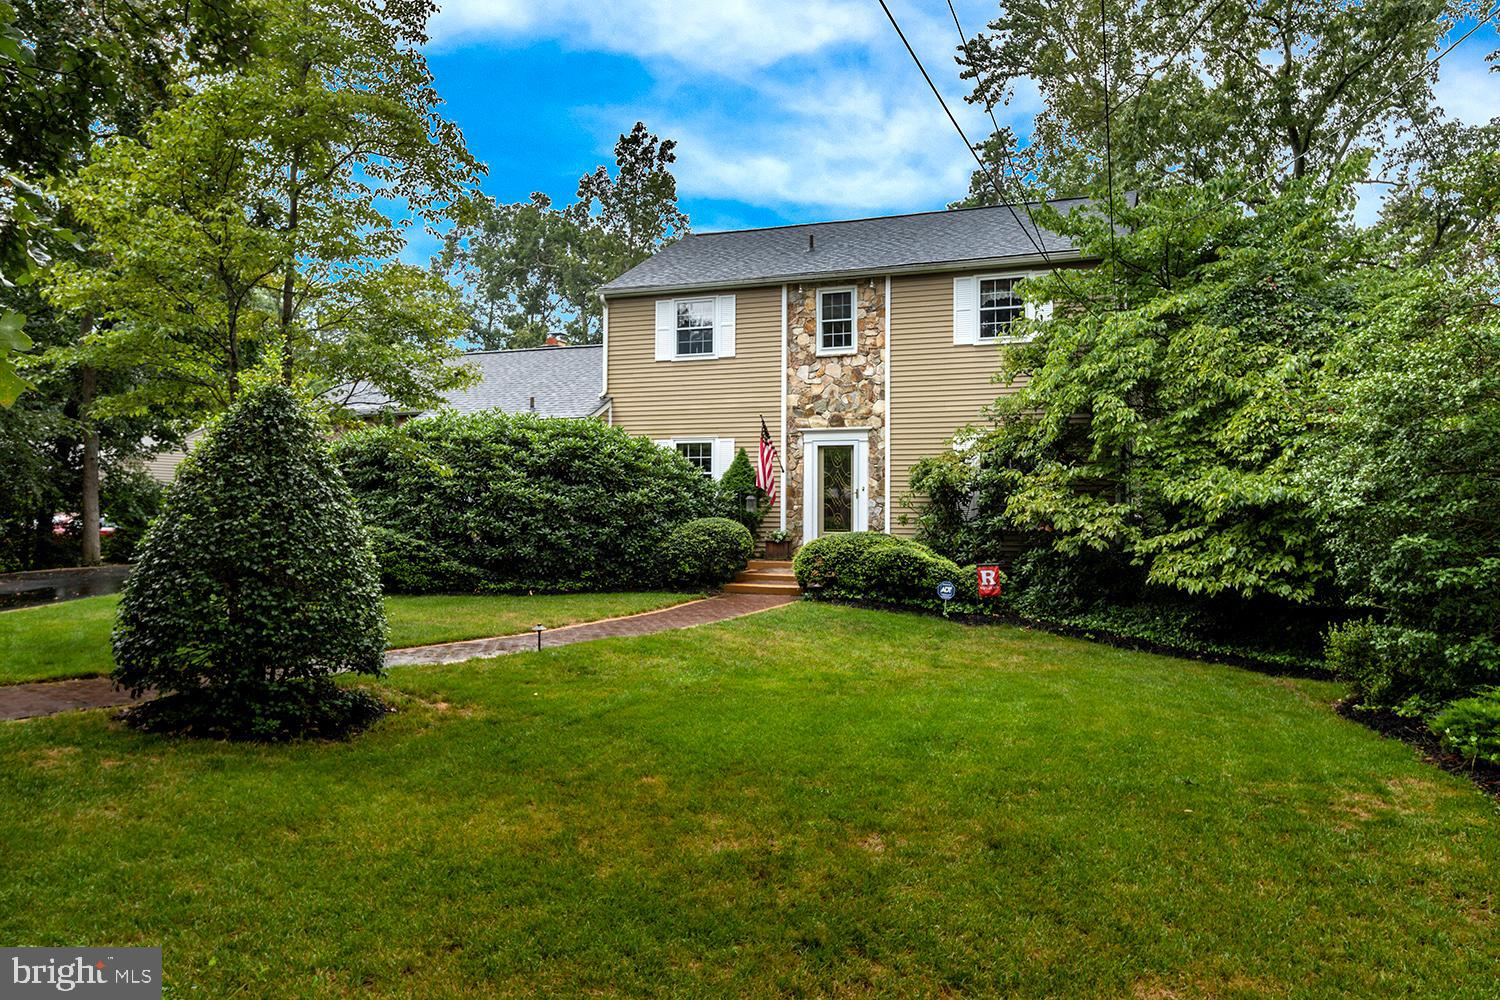 114 N lakeside Drive E, Medford NJ 08055